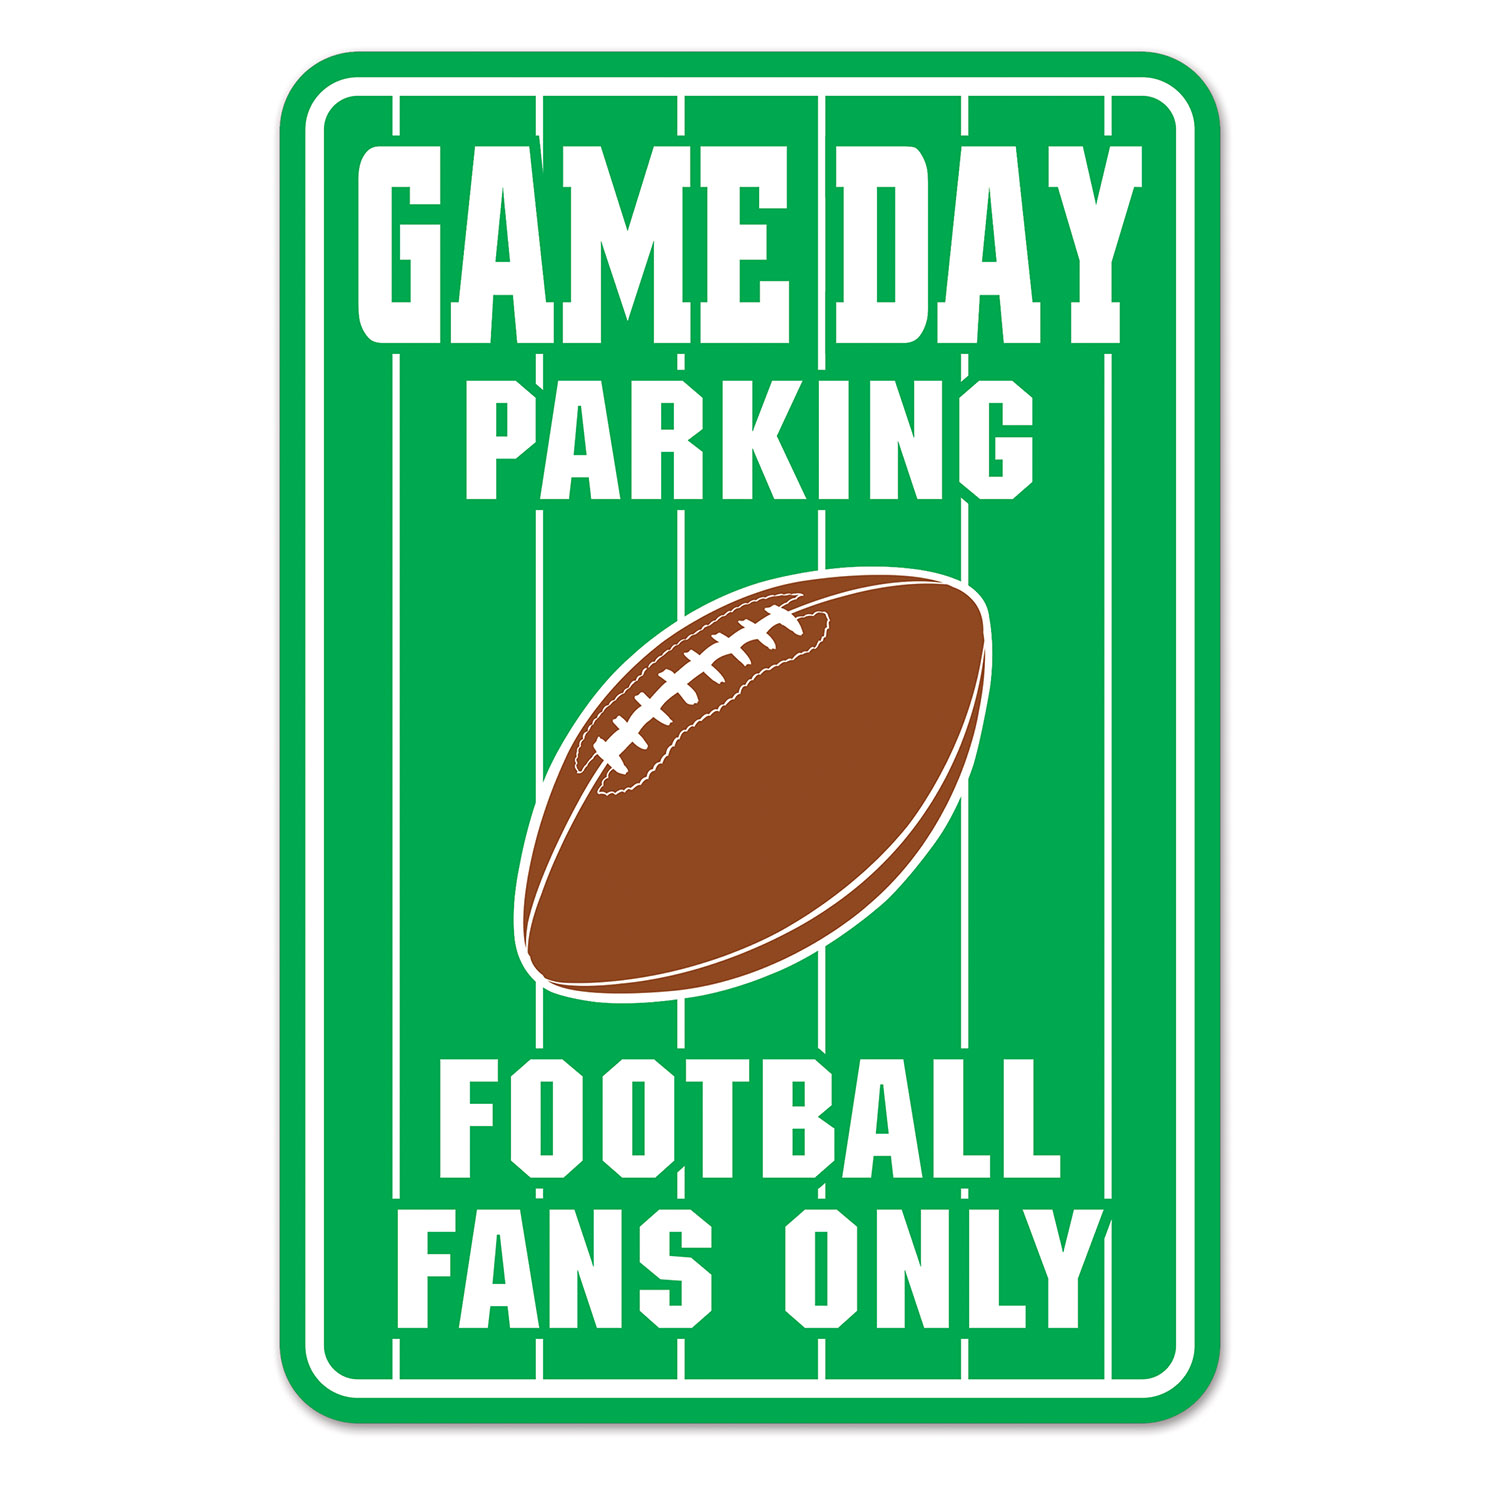 Game Day Parking Sign (Pack of 24) Game Day Parking Sign, Football decorations, Wholesale party supplies, Sports decorations, Inexpensive hanging decorations, Football poster